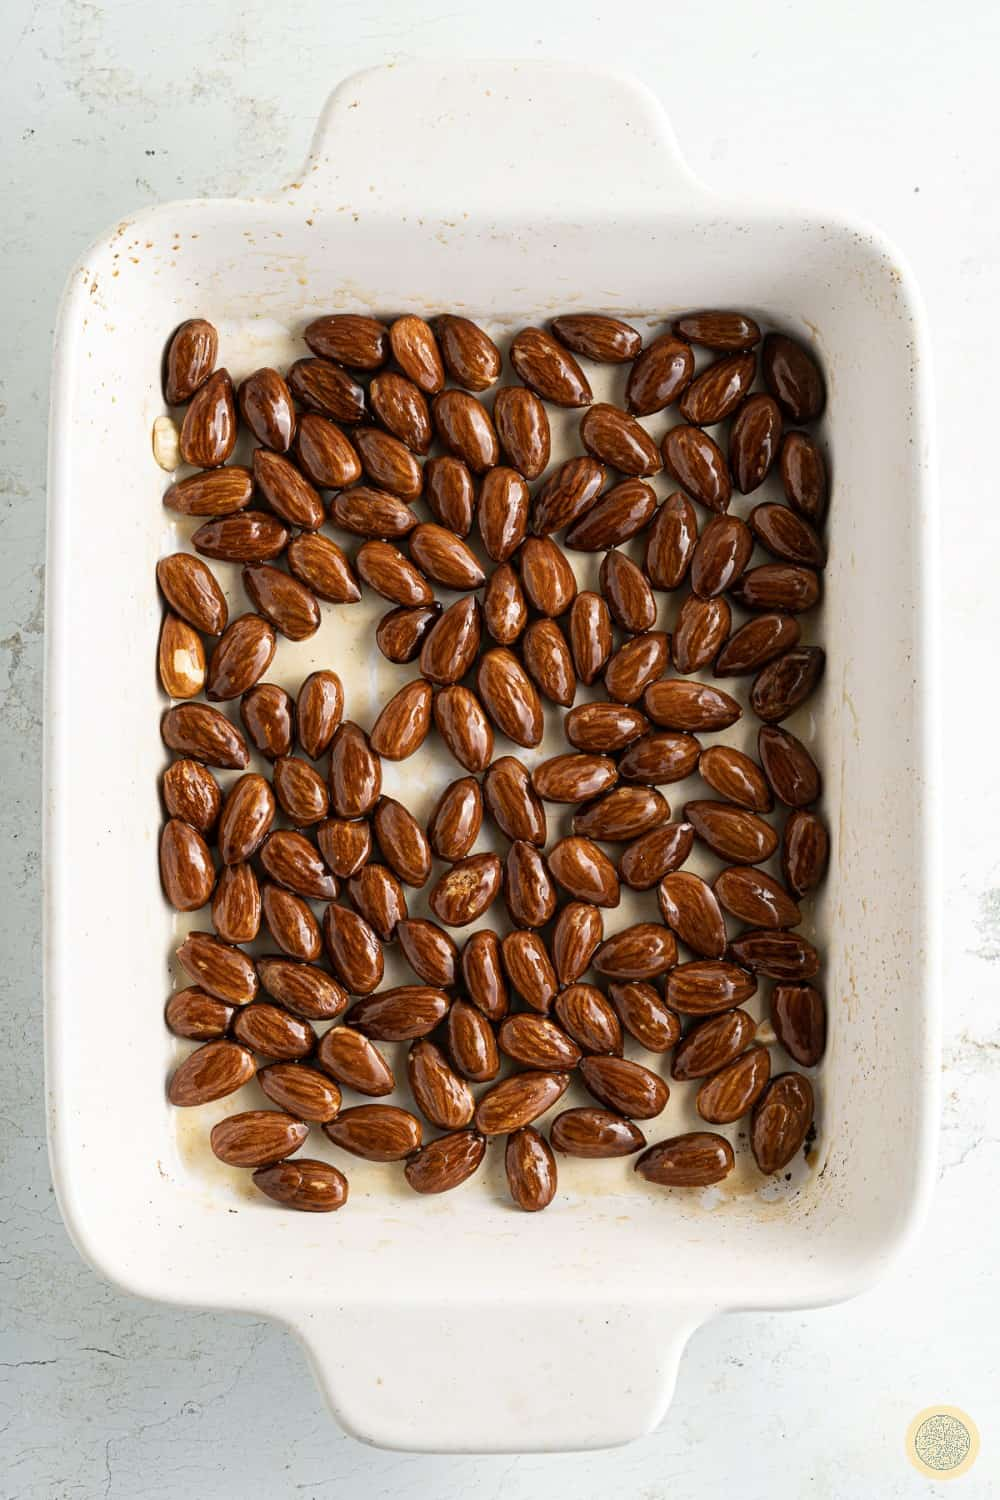 place the almonds with a drizzle of olive oil and bake them for 10-12 minutes